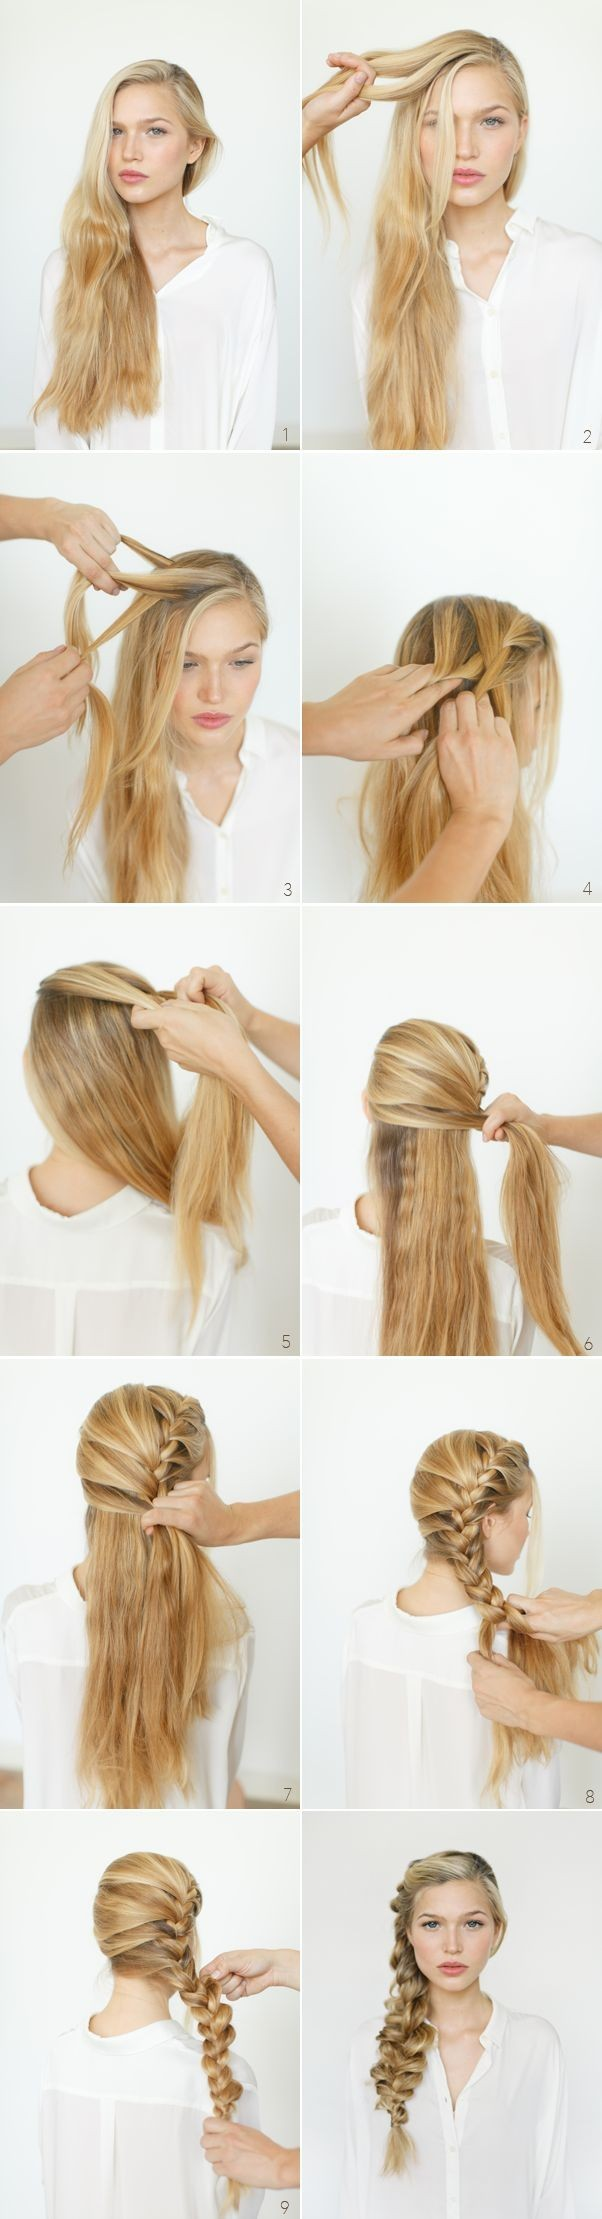 Romantic Side Braid Hairstyle Tutorial